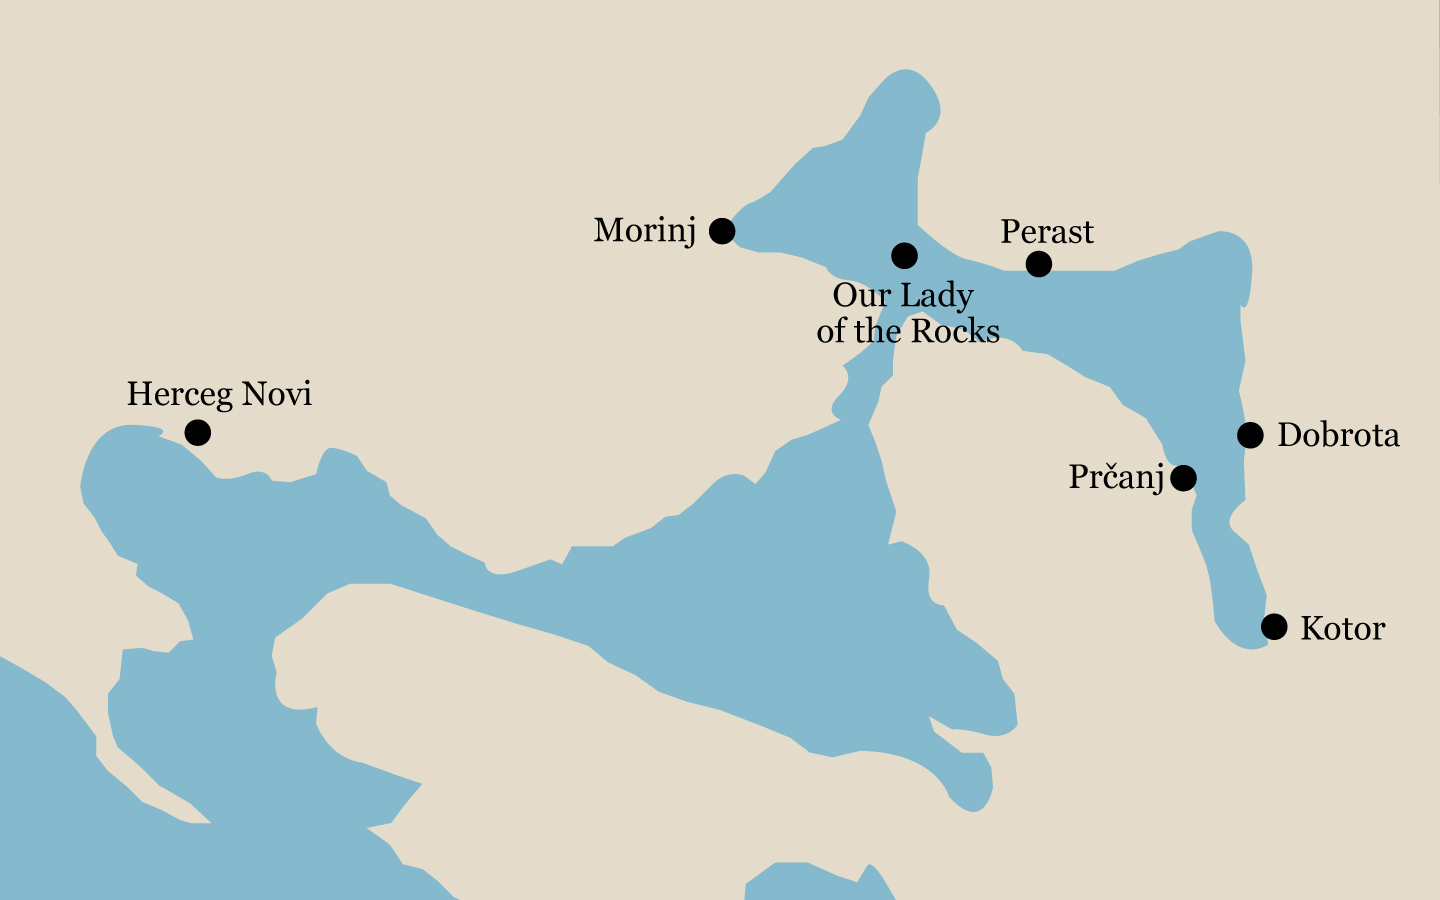 Map of the Bay of Kotor